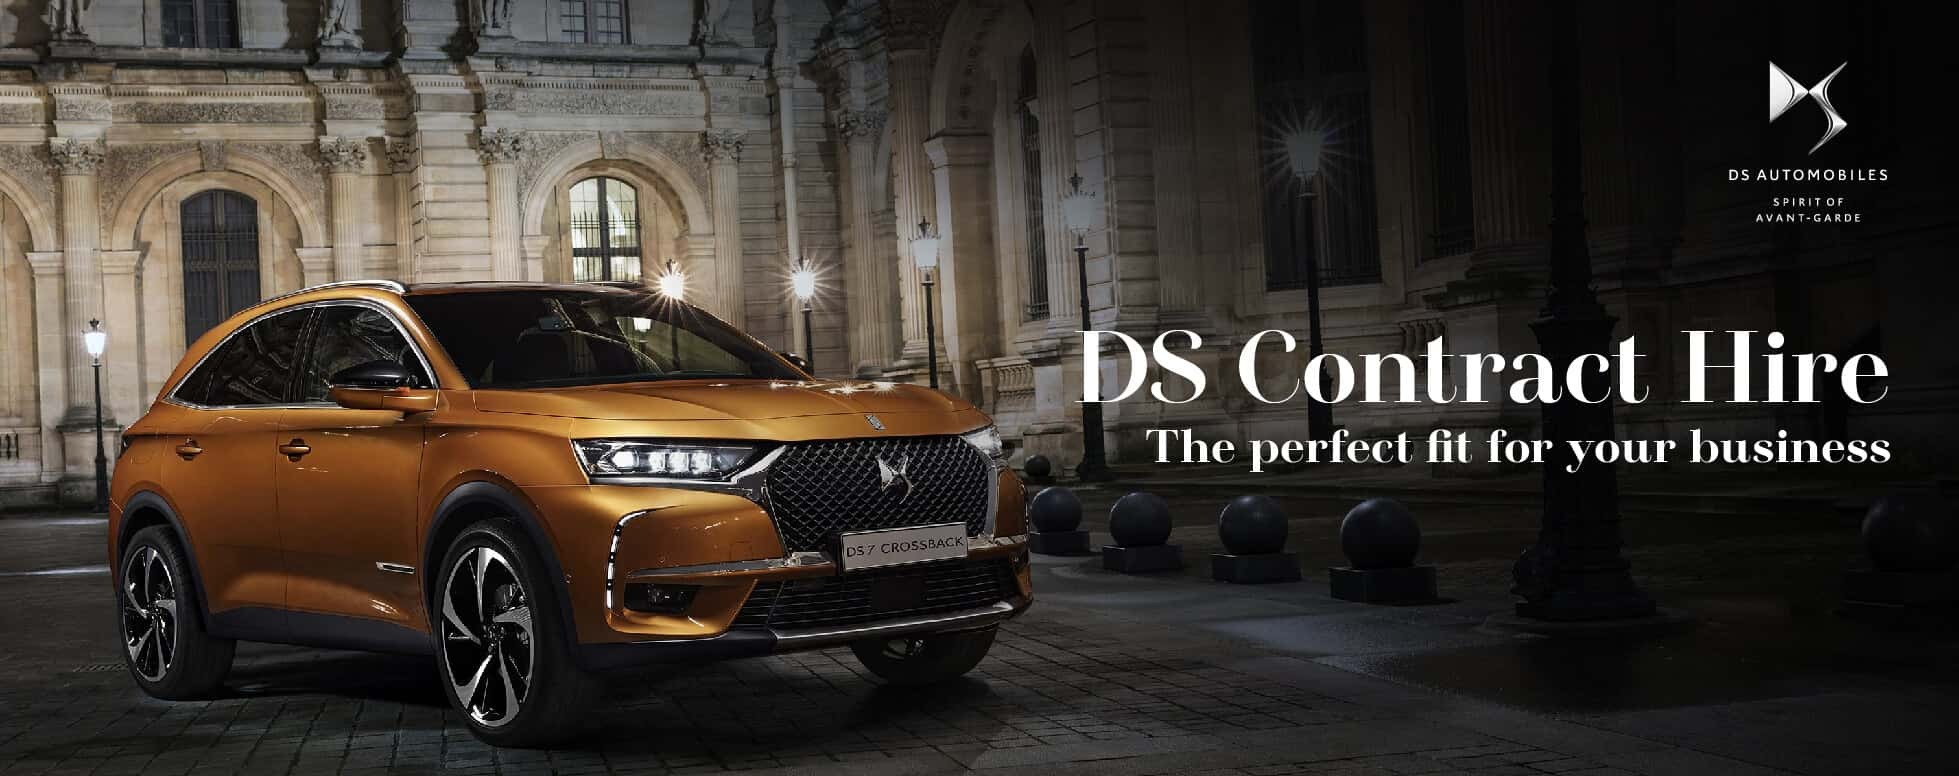 DS Contract Hire